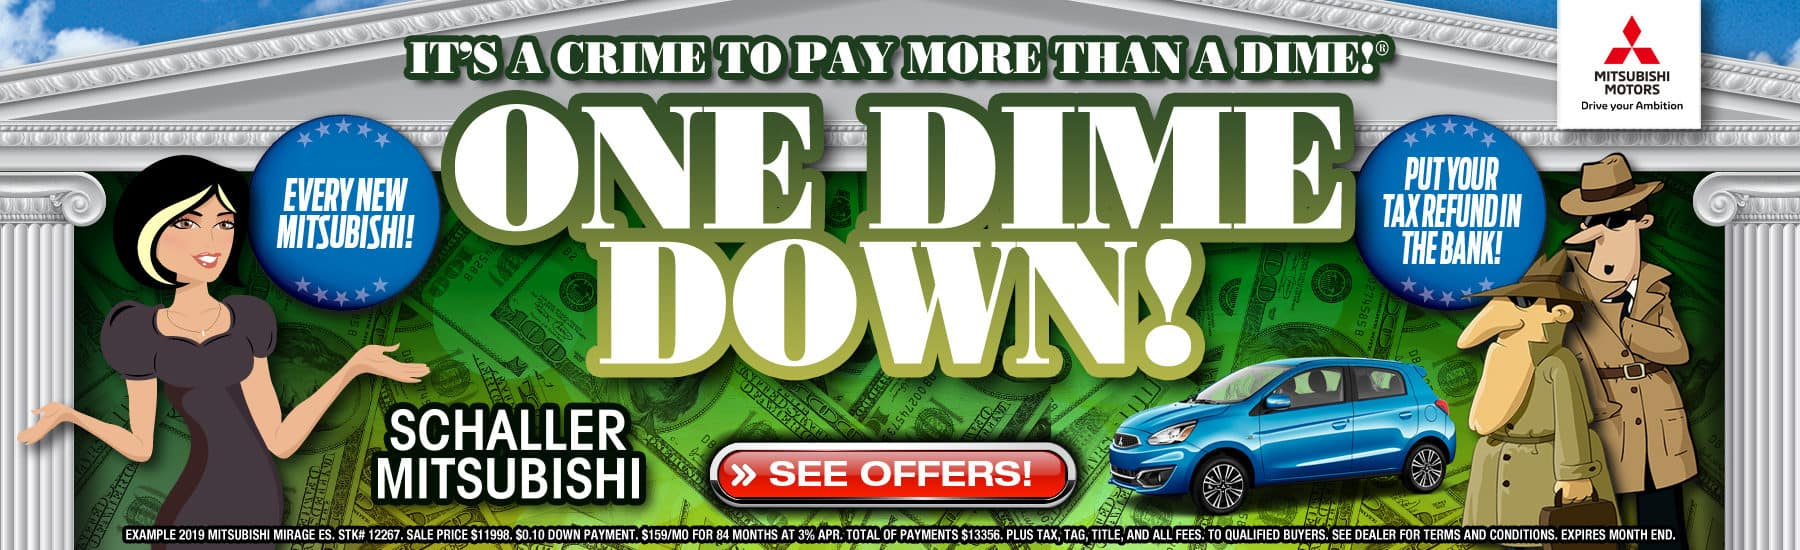 Pay just One Dime Down on New Mitsubishis